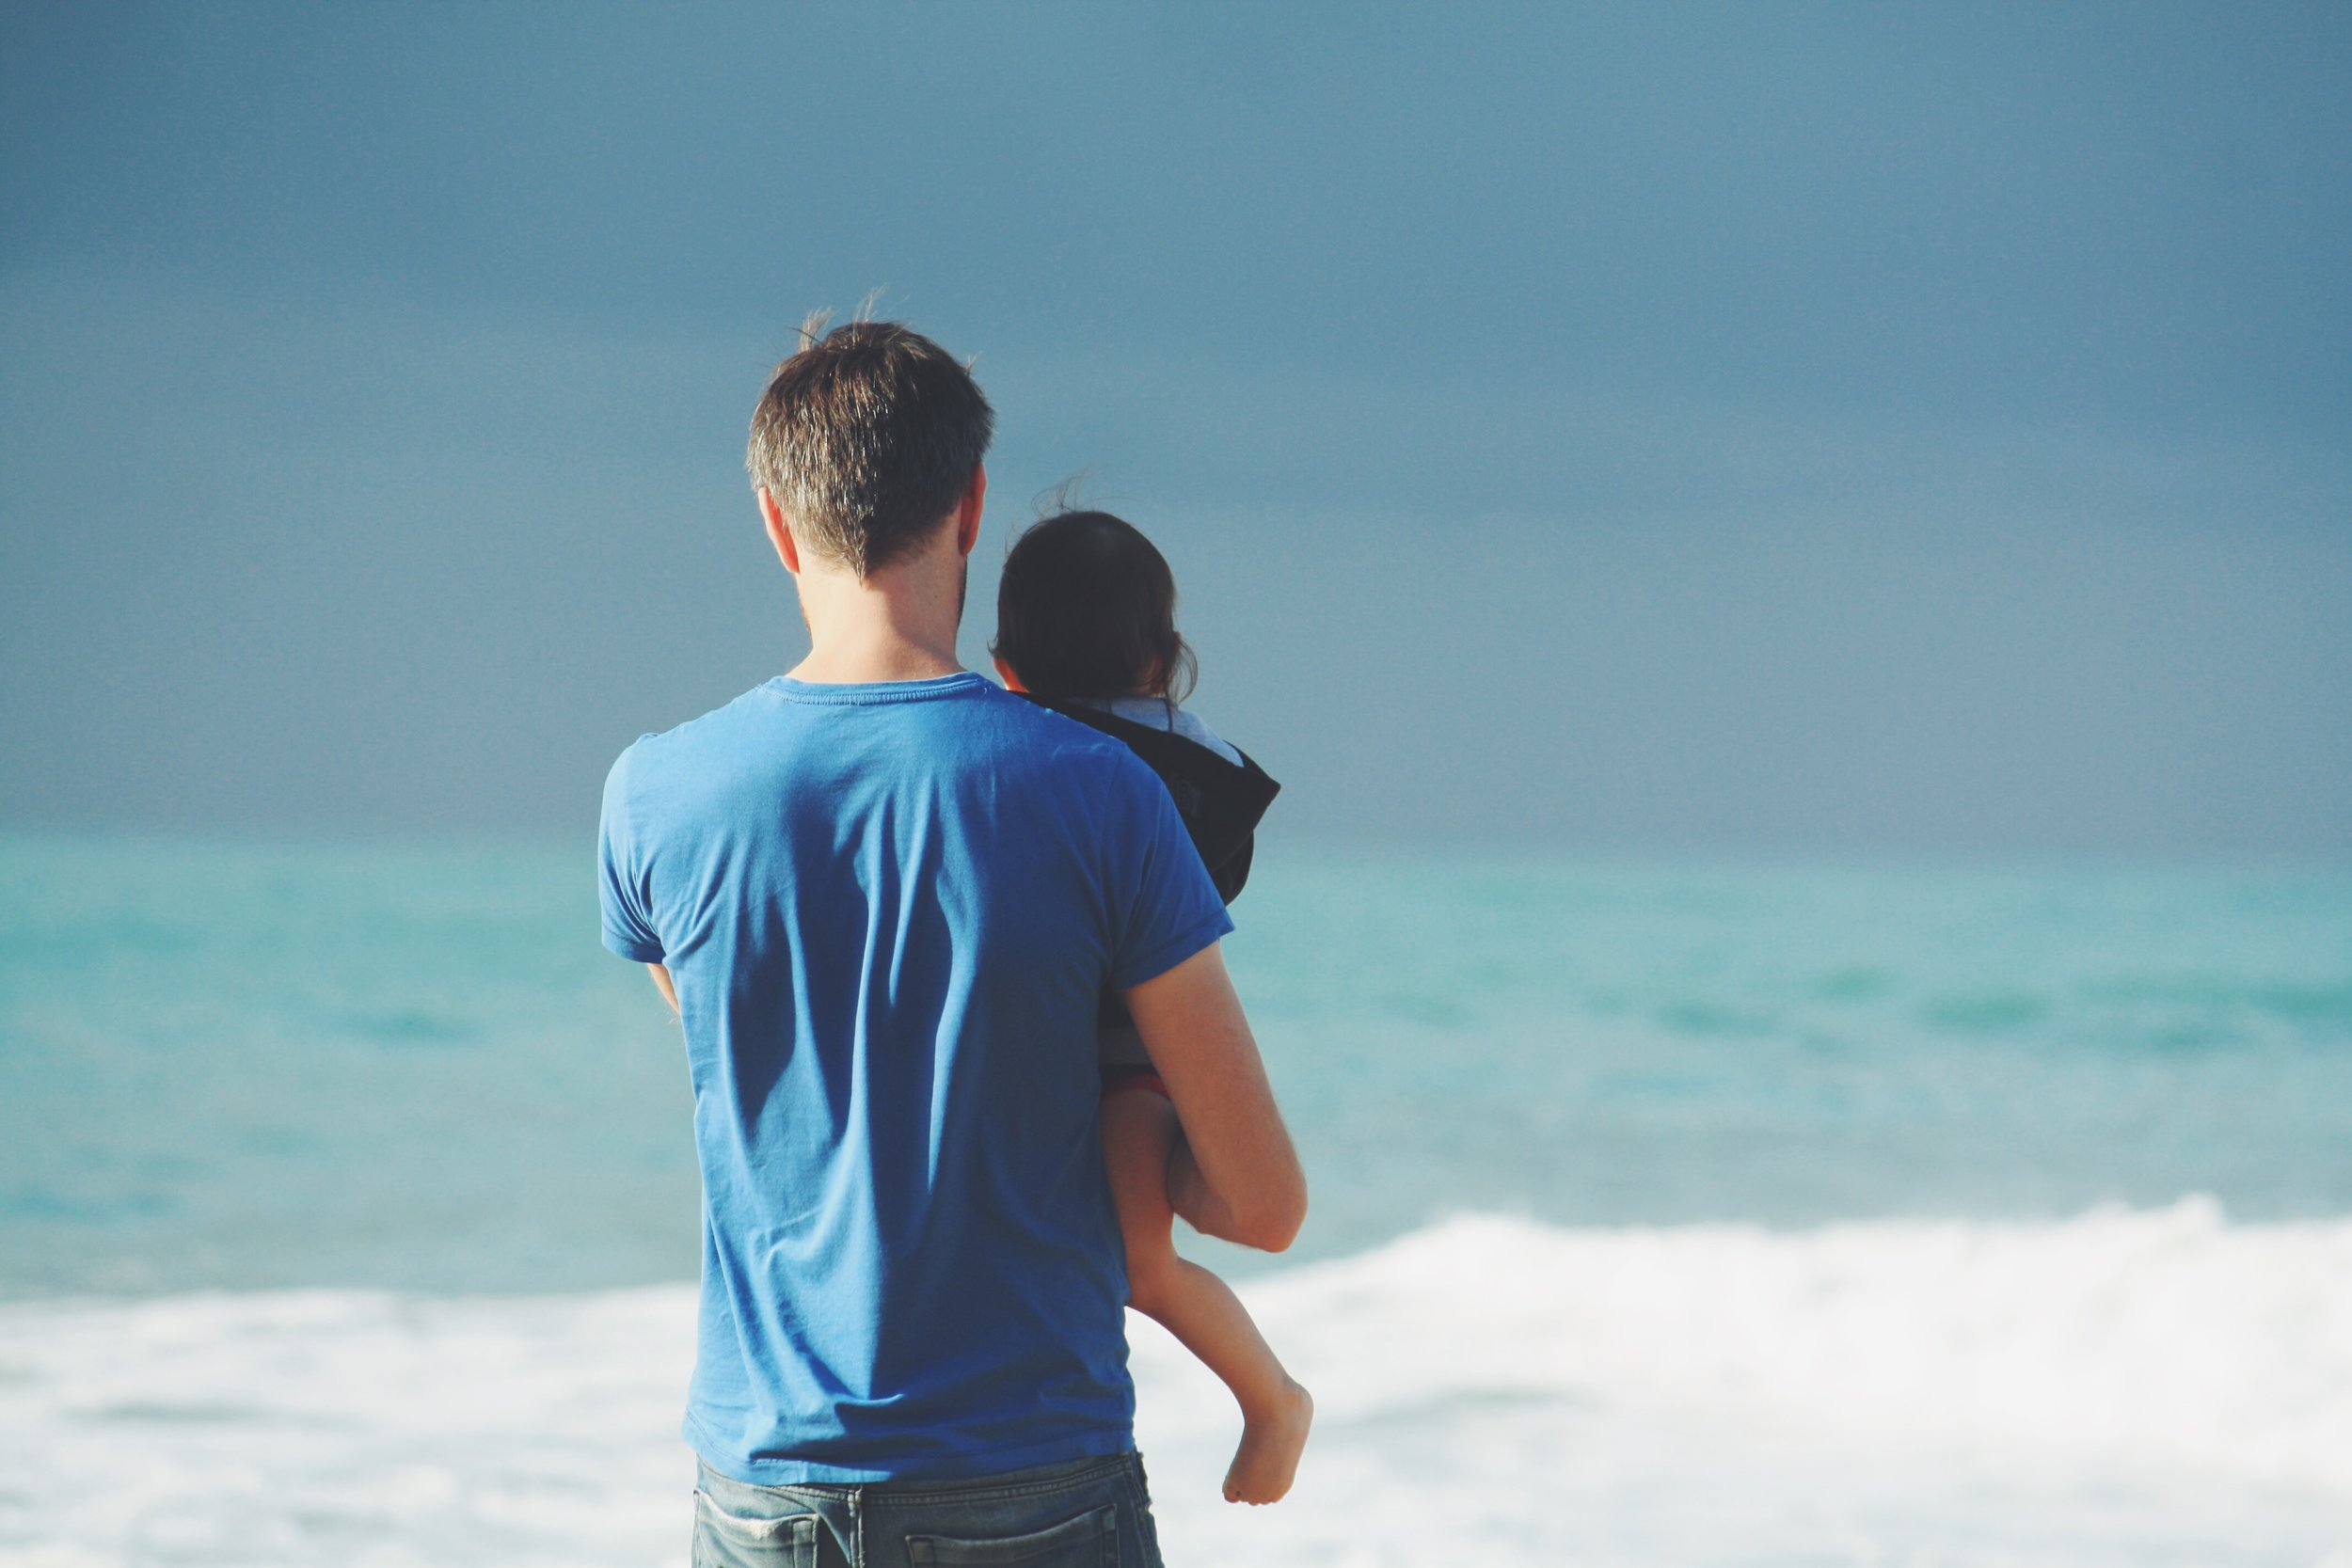 Paternity - If you have a child outside of a marriage and a Recognition of Parentage was not signed at the hospital (or shortly thereafter), then paternity will need to be established before a dad can have any rights to the child.